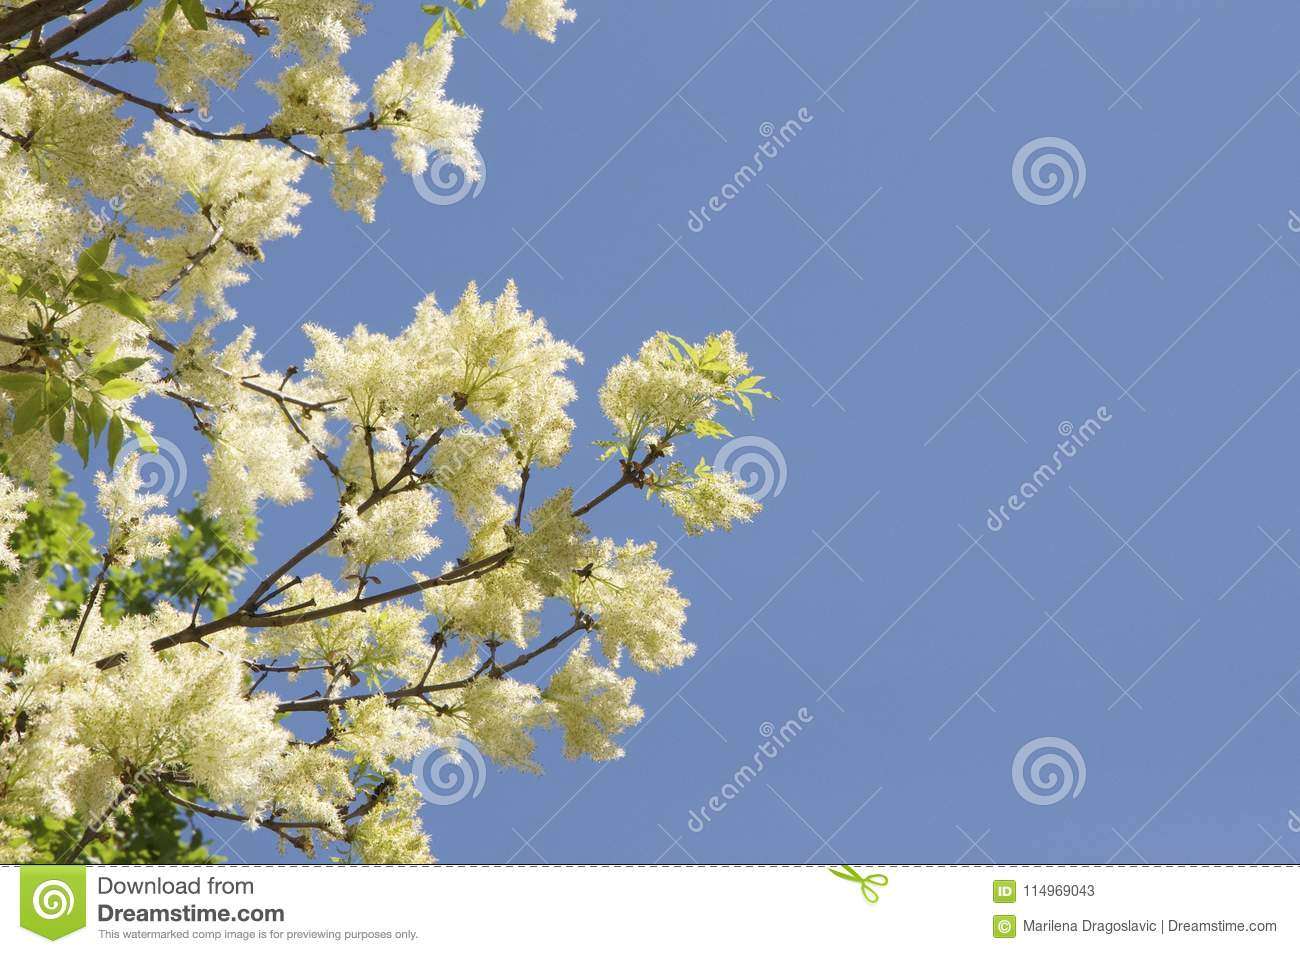 Tree with yellow flower with blue sky in background stock image download tree with yellow flower with blue sky in background stock image image of flower izmirmasajfo